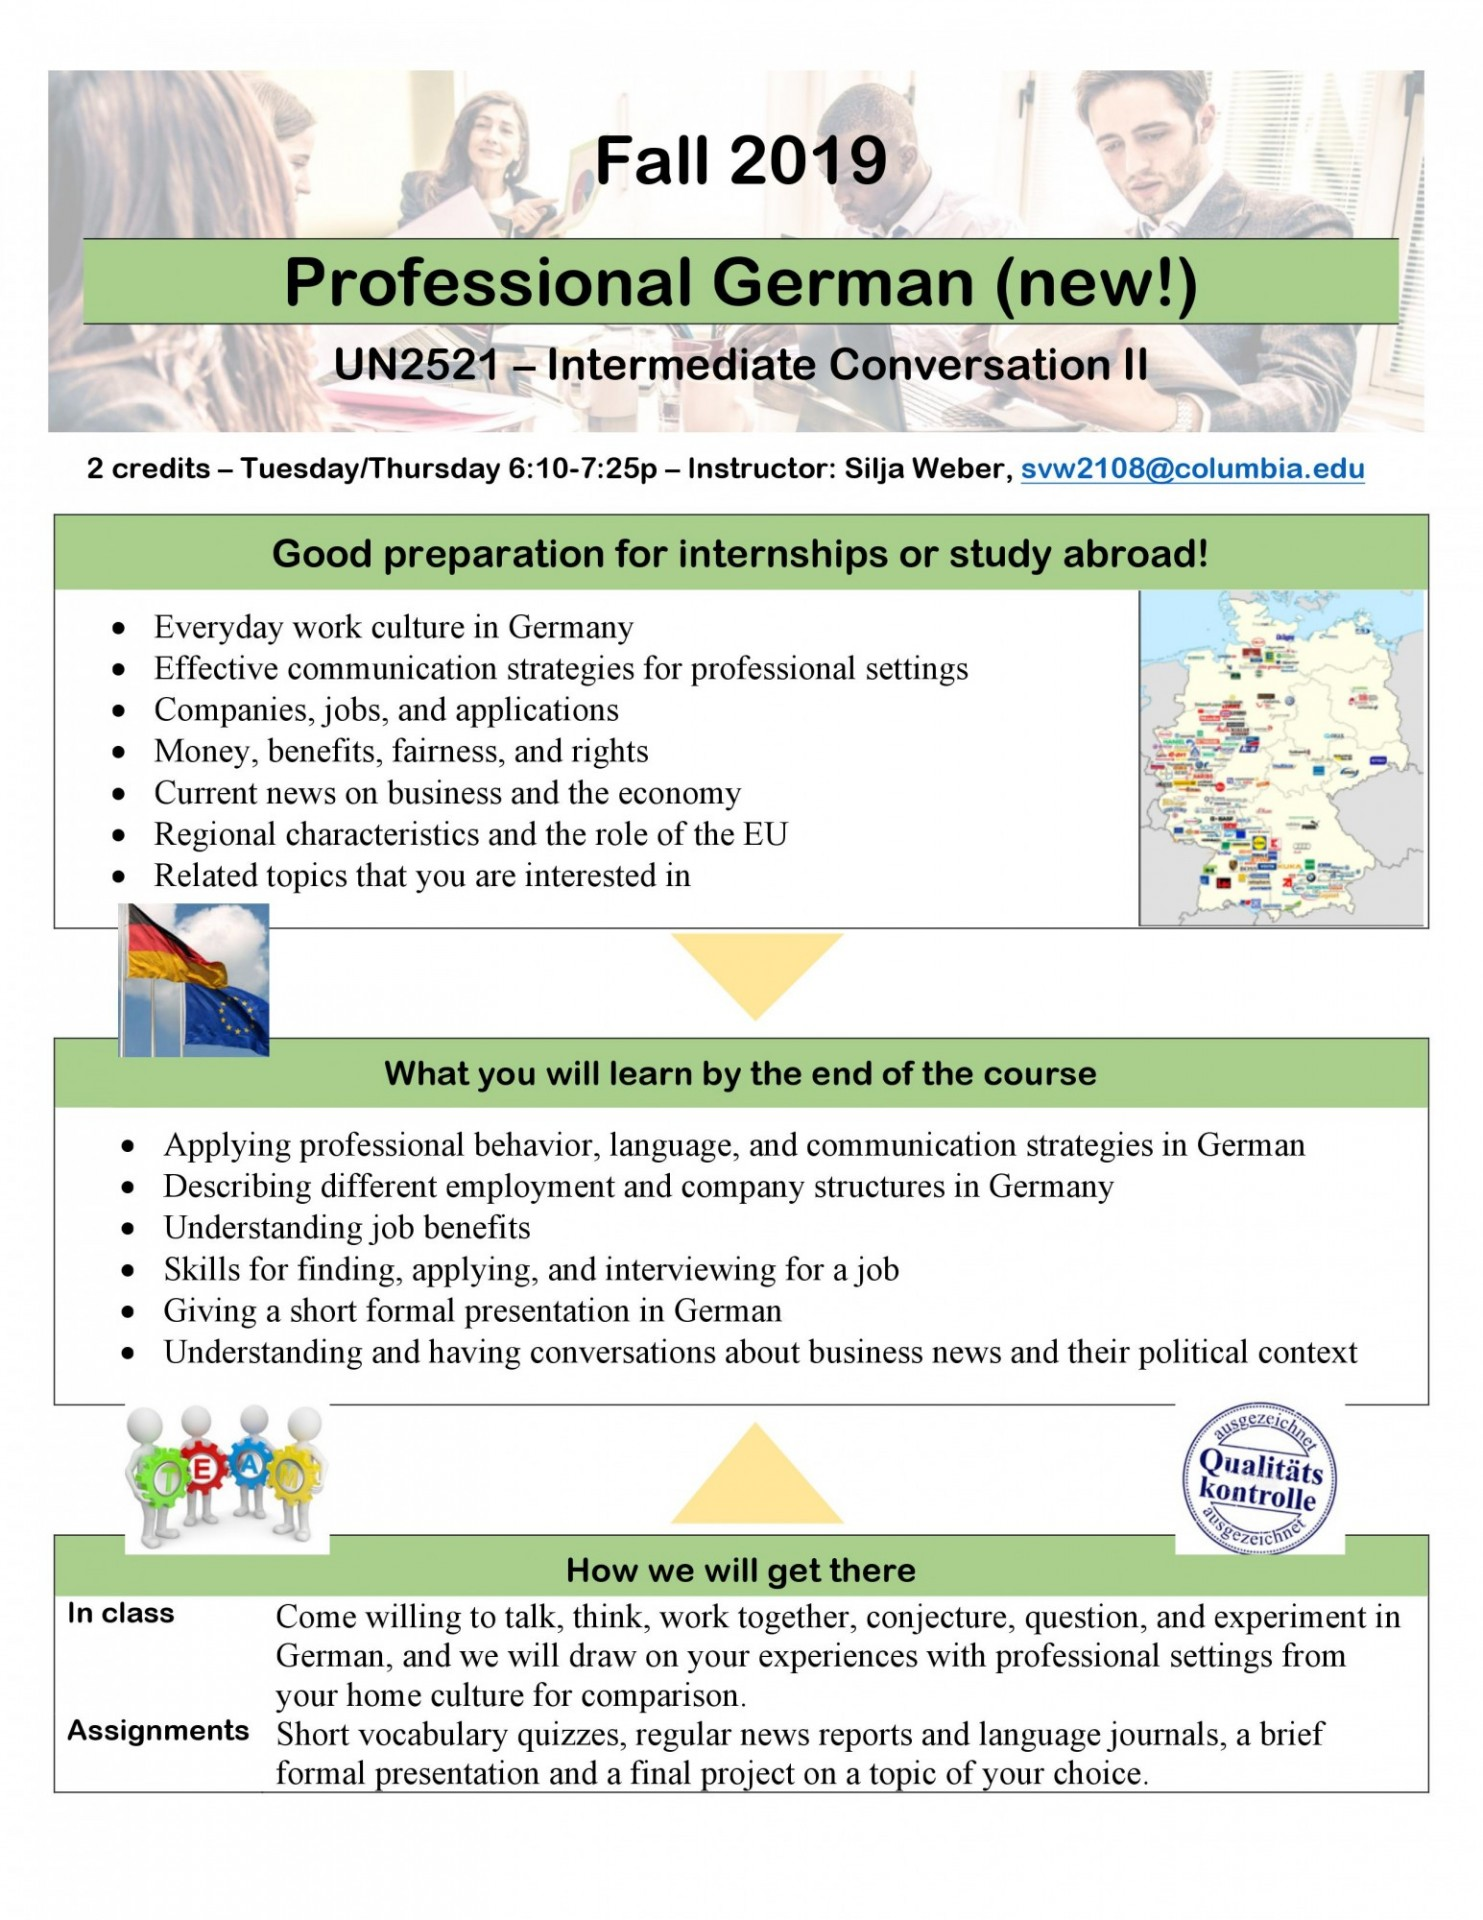 New Professional German course